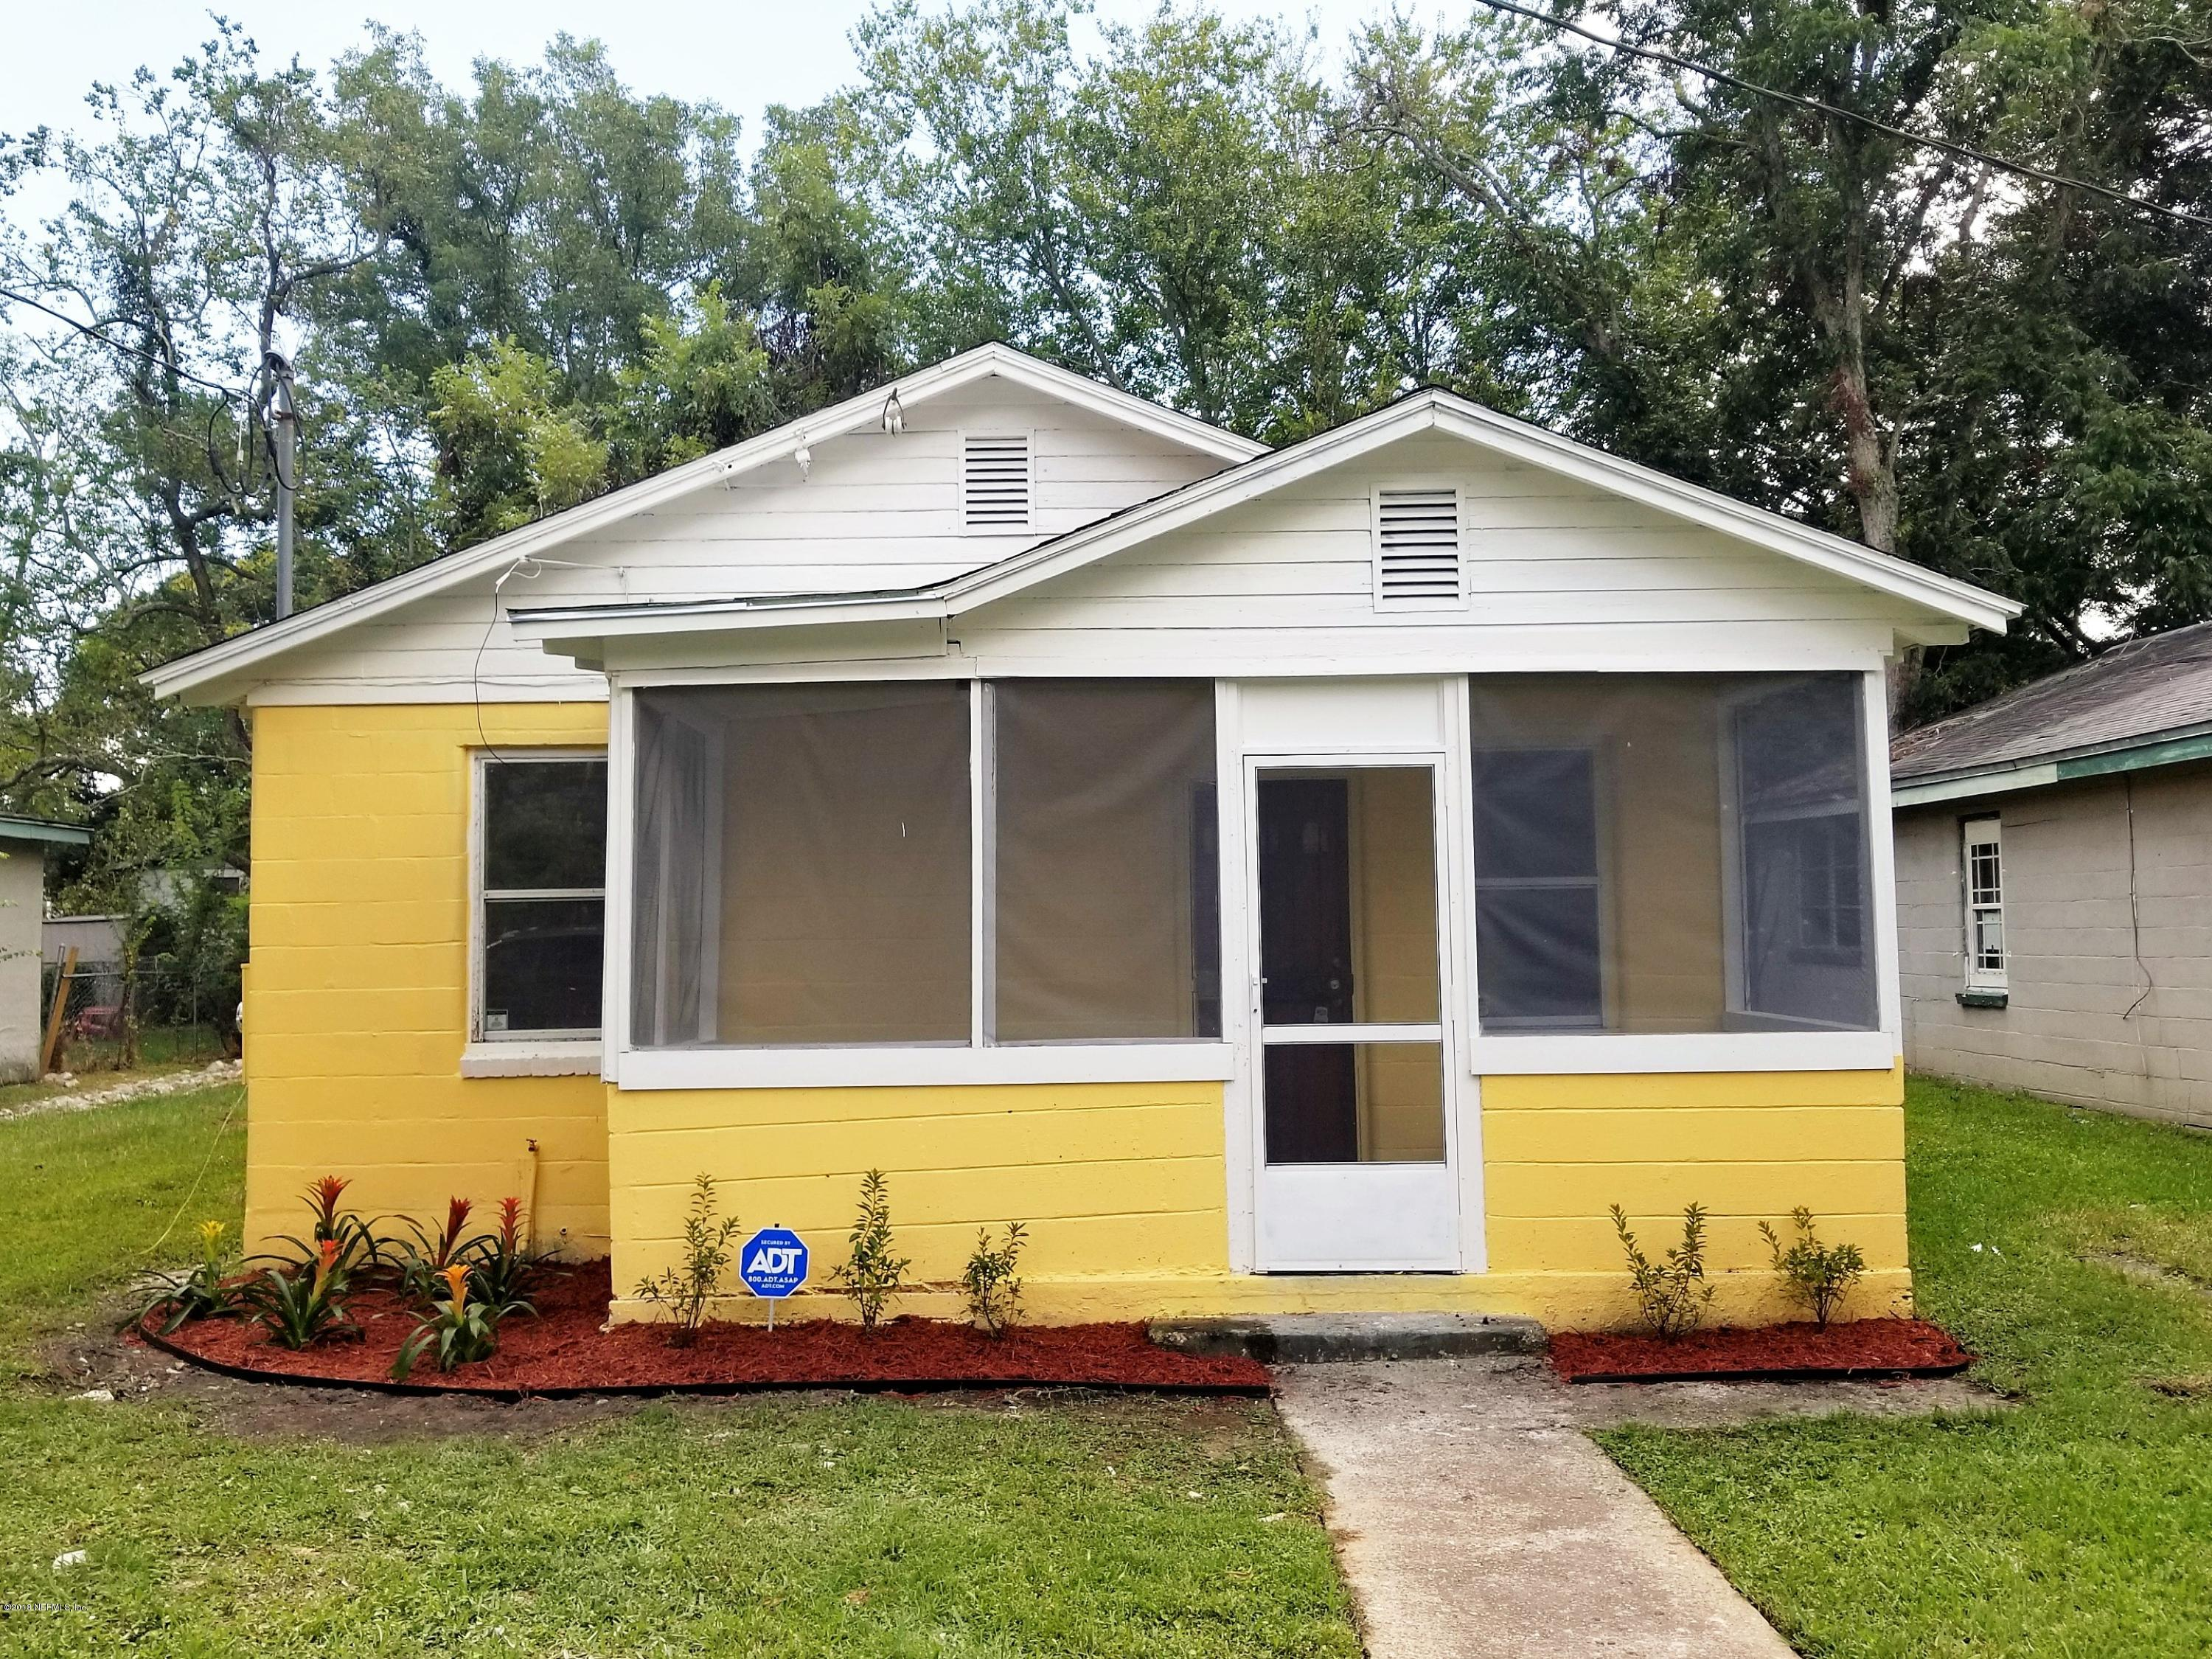 1520 19TH, JACKSONVILLE, FLORIDA 32209, 3 Bedrooms Bedrooms, ,1 BathroomBathrooms,Residential - single family,For sale,19TH,956711